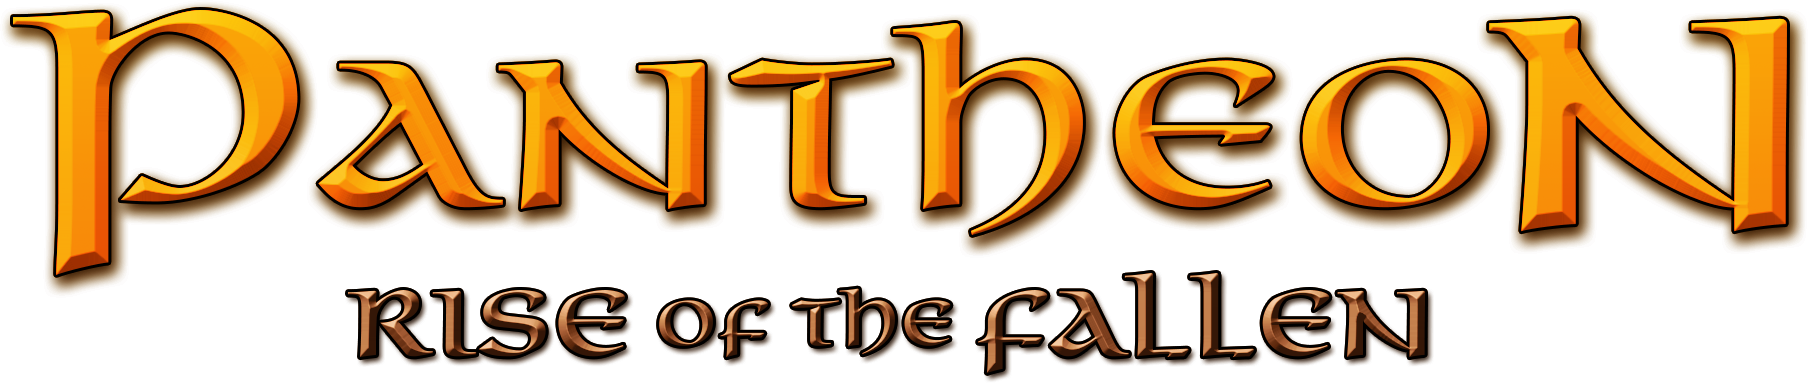 Pantheon_logo_large.png